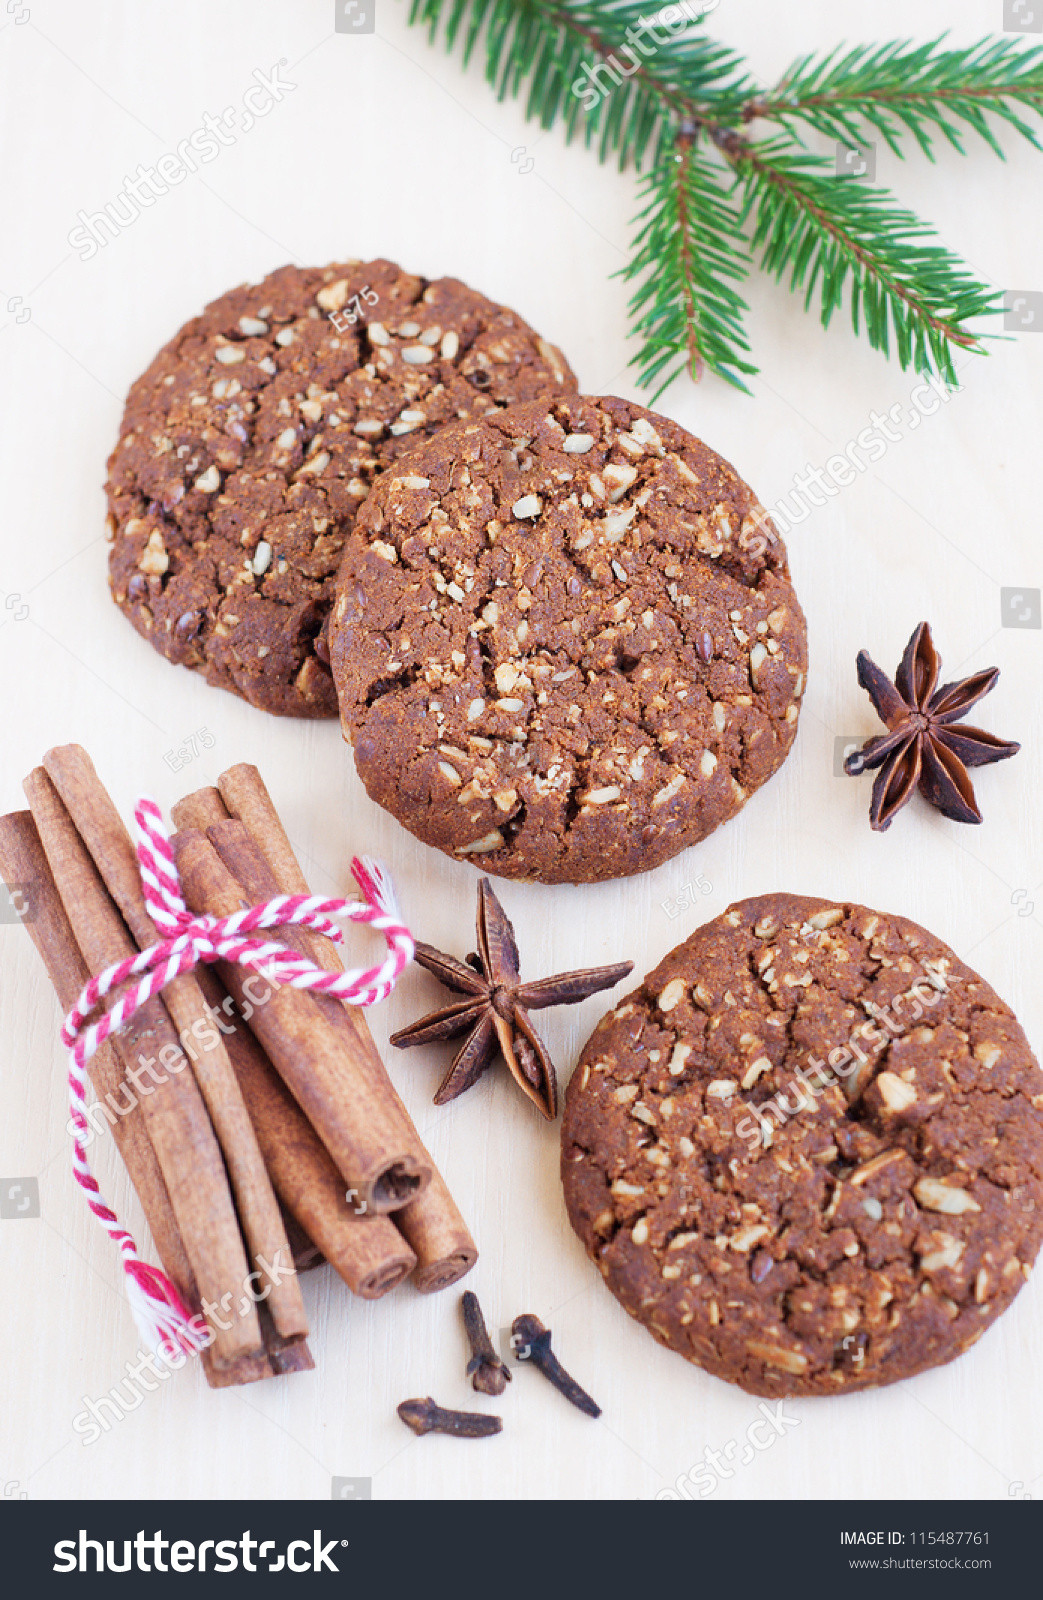 Christmas Cookies With Nuts  Christmas Cookies Nuts And Spices Wooden Table Stock